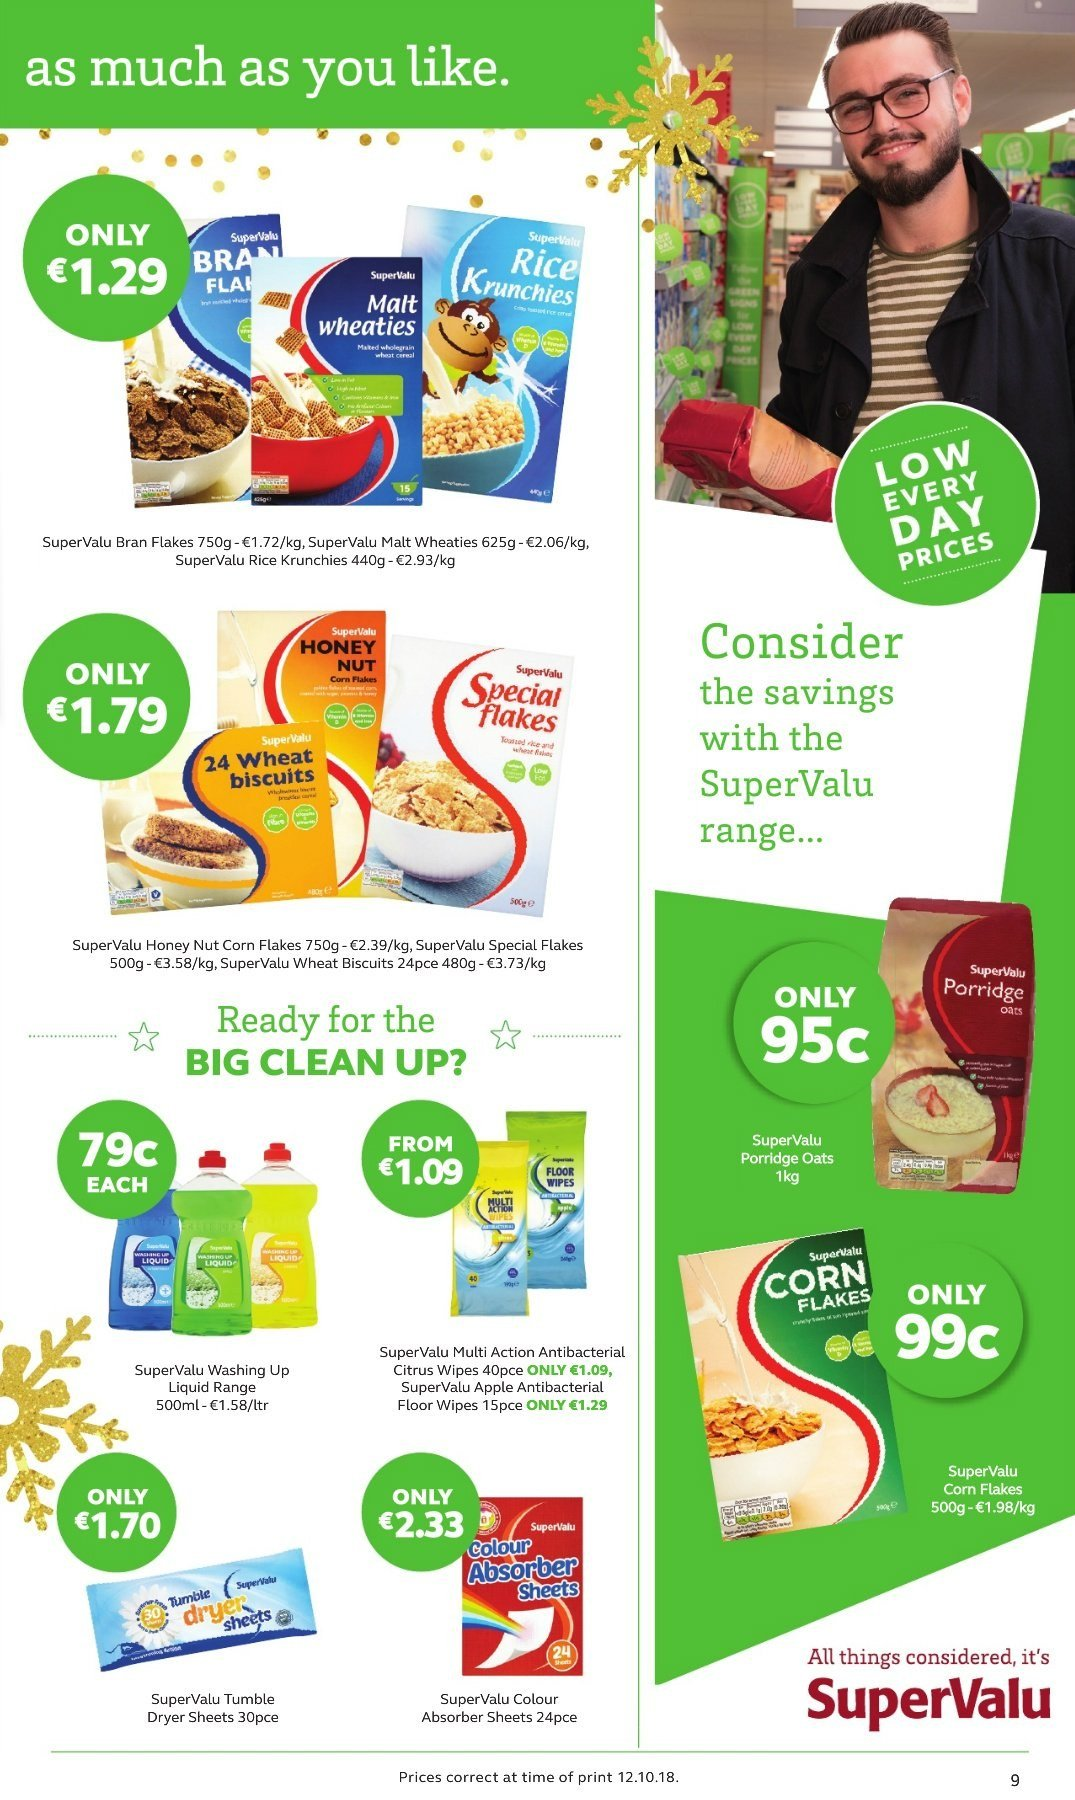 SuperValu offer  - 8.11.2018 - 21.11.2018 - Sales products - biscuit, oats, malt, cereals, corn flakes, porridge, bran flakes, rice, wipes, dryer sheets, dishwashing liquid, tumble dryer. Page 9.